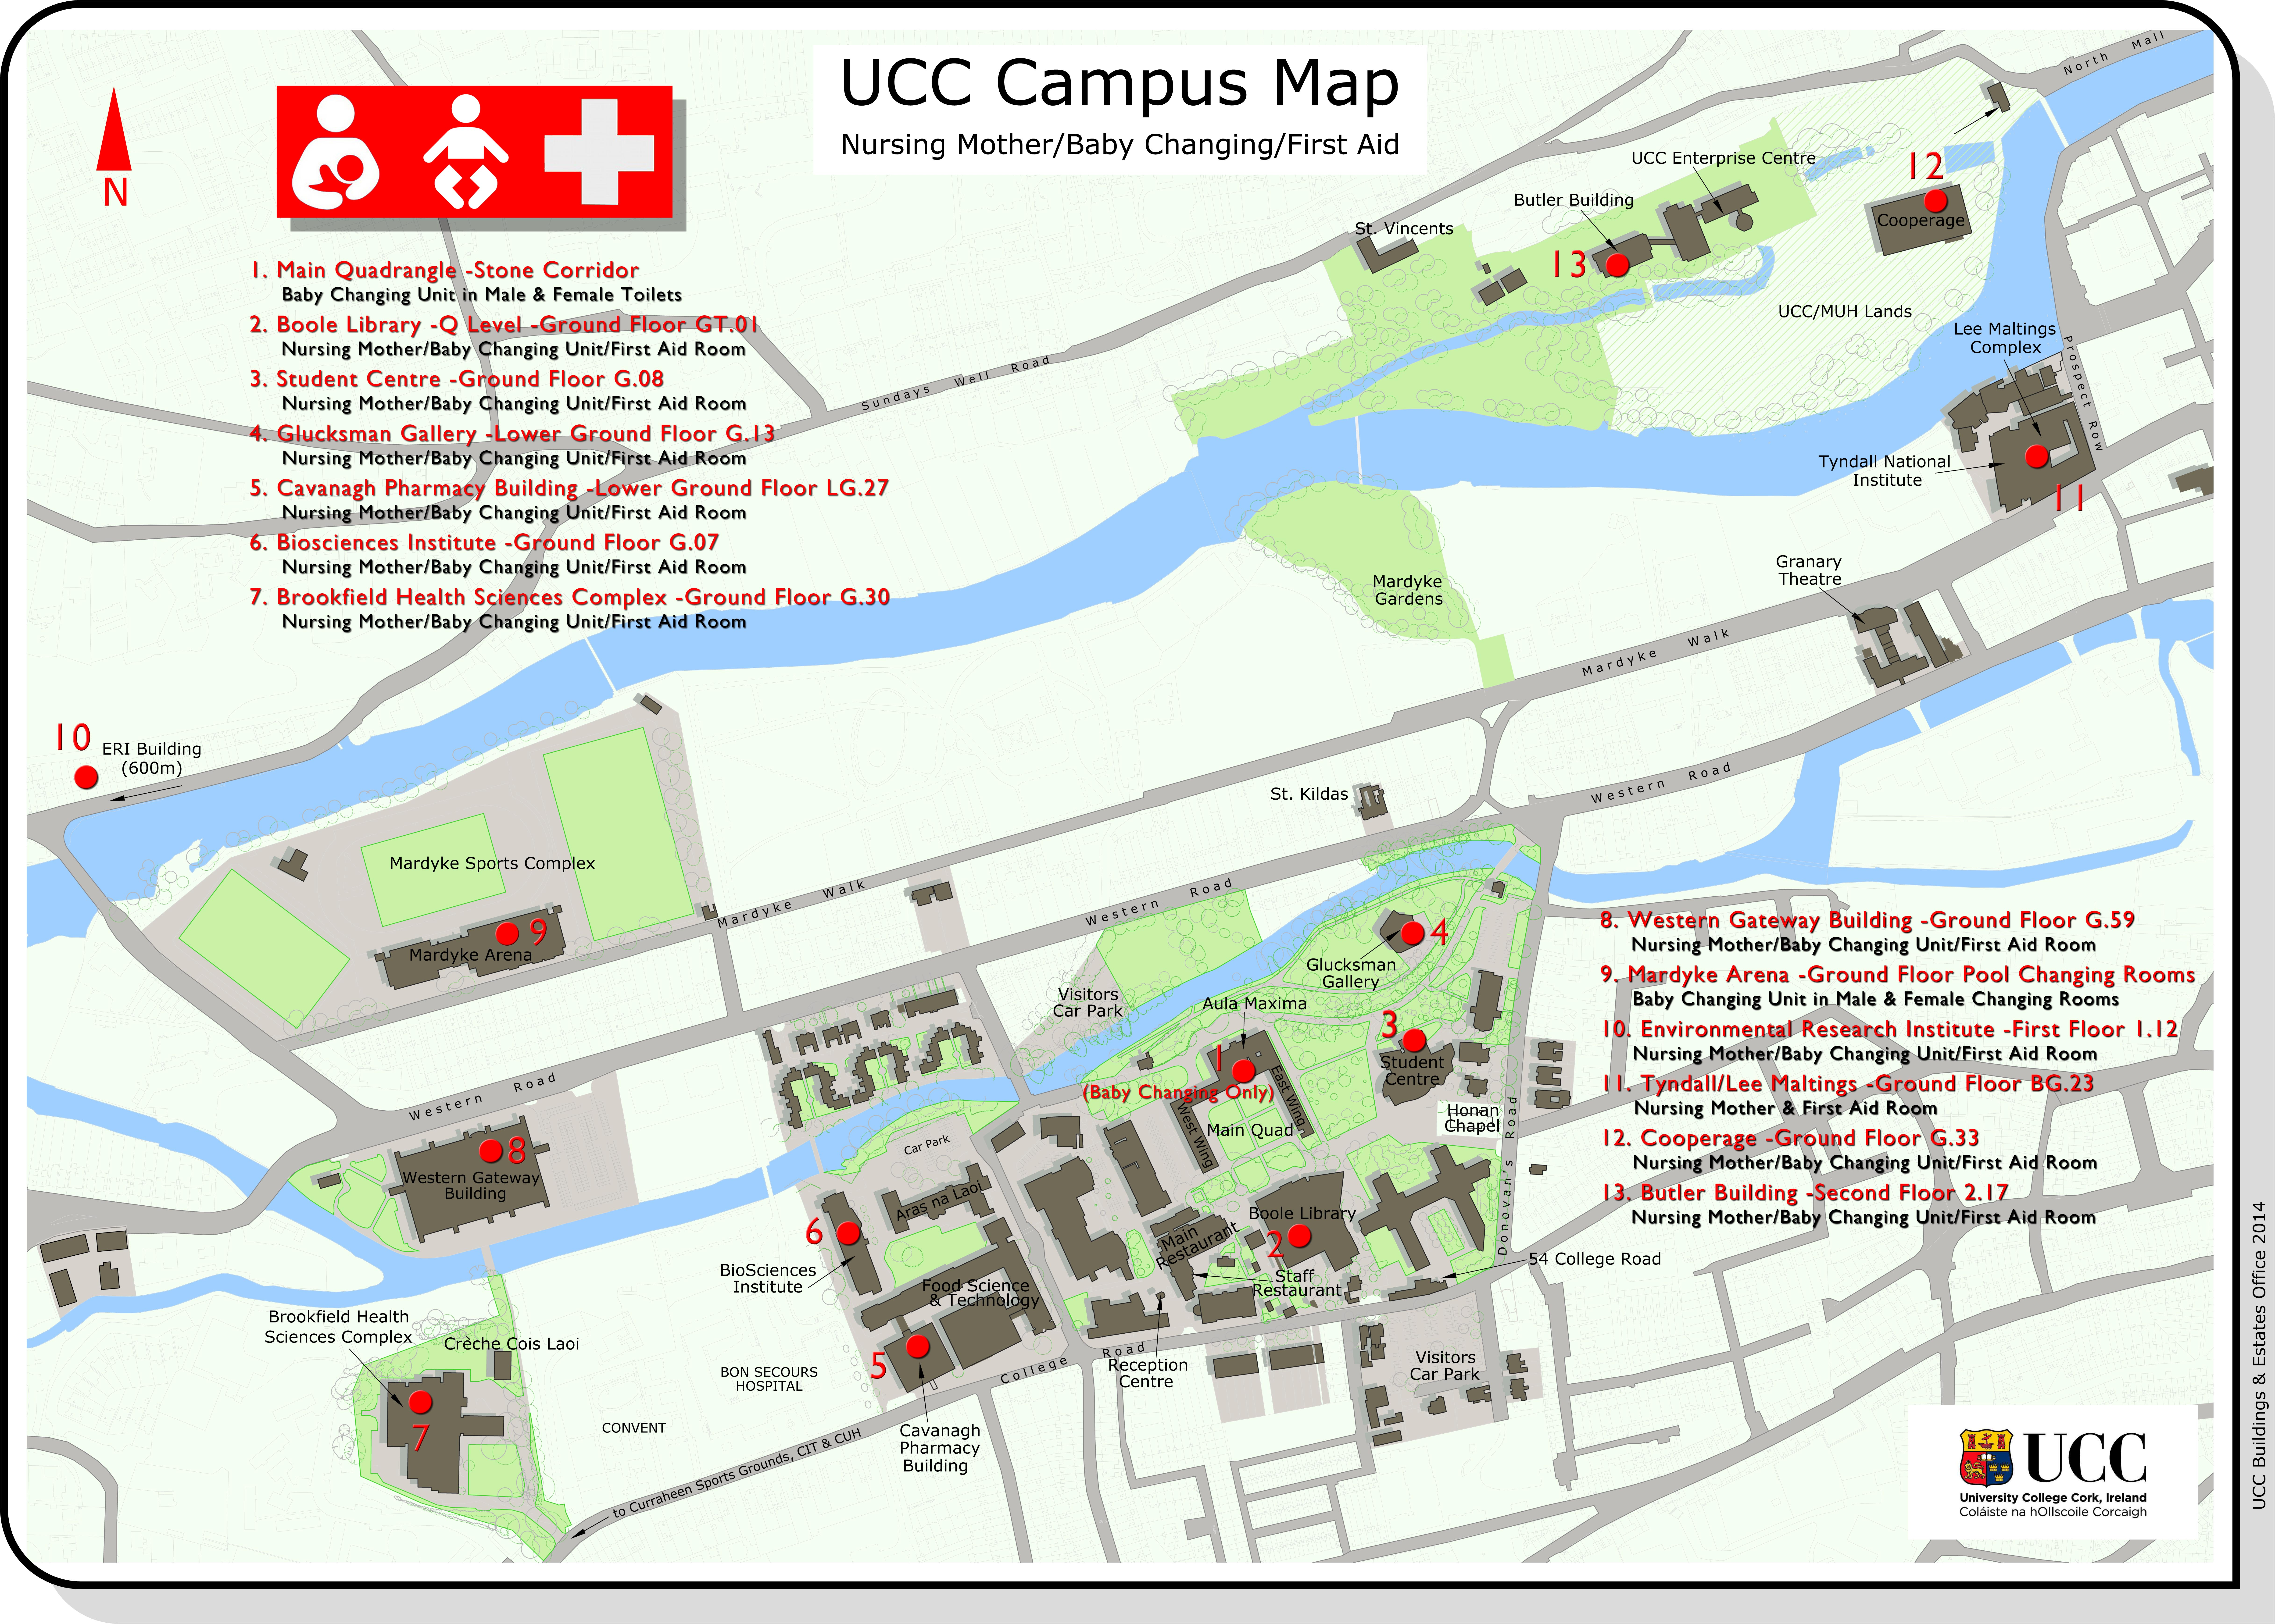 Riverside City College Campus Map.Download Maps Of The Ucc Campus University College Cork